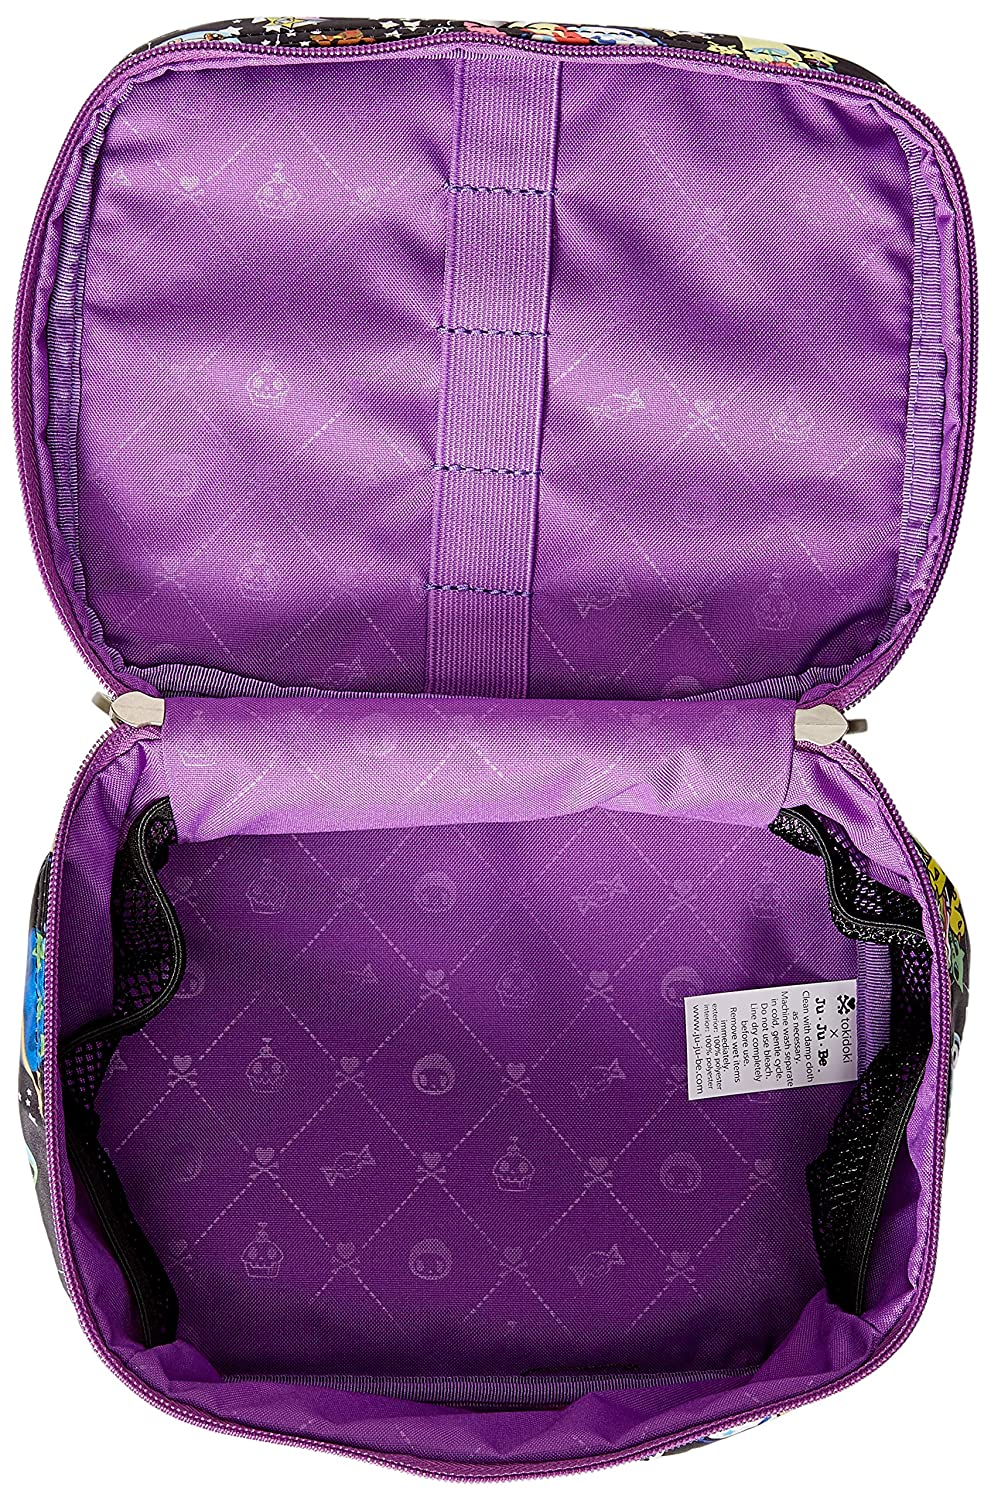 The Queen of The Nile Ju-Ju-Be Be Ready Diaper Bag